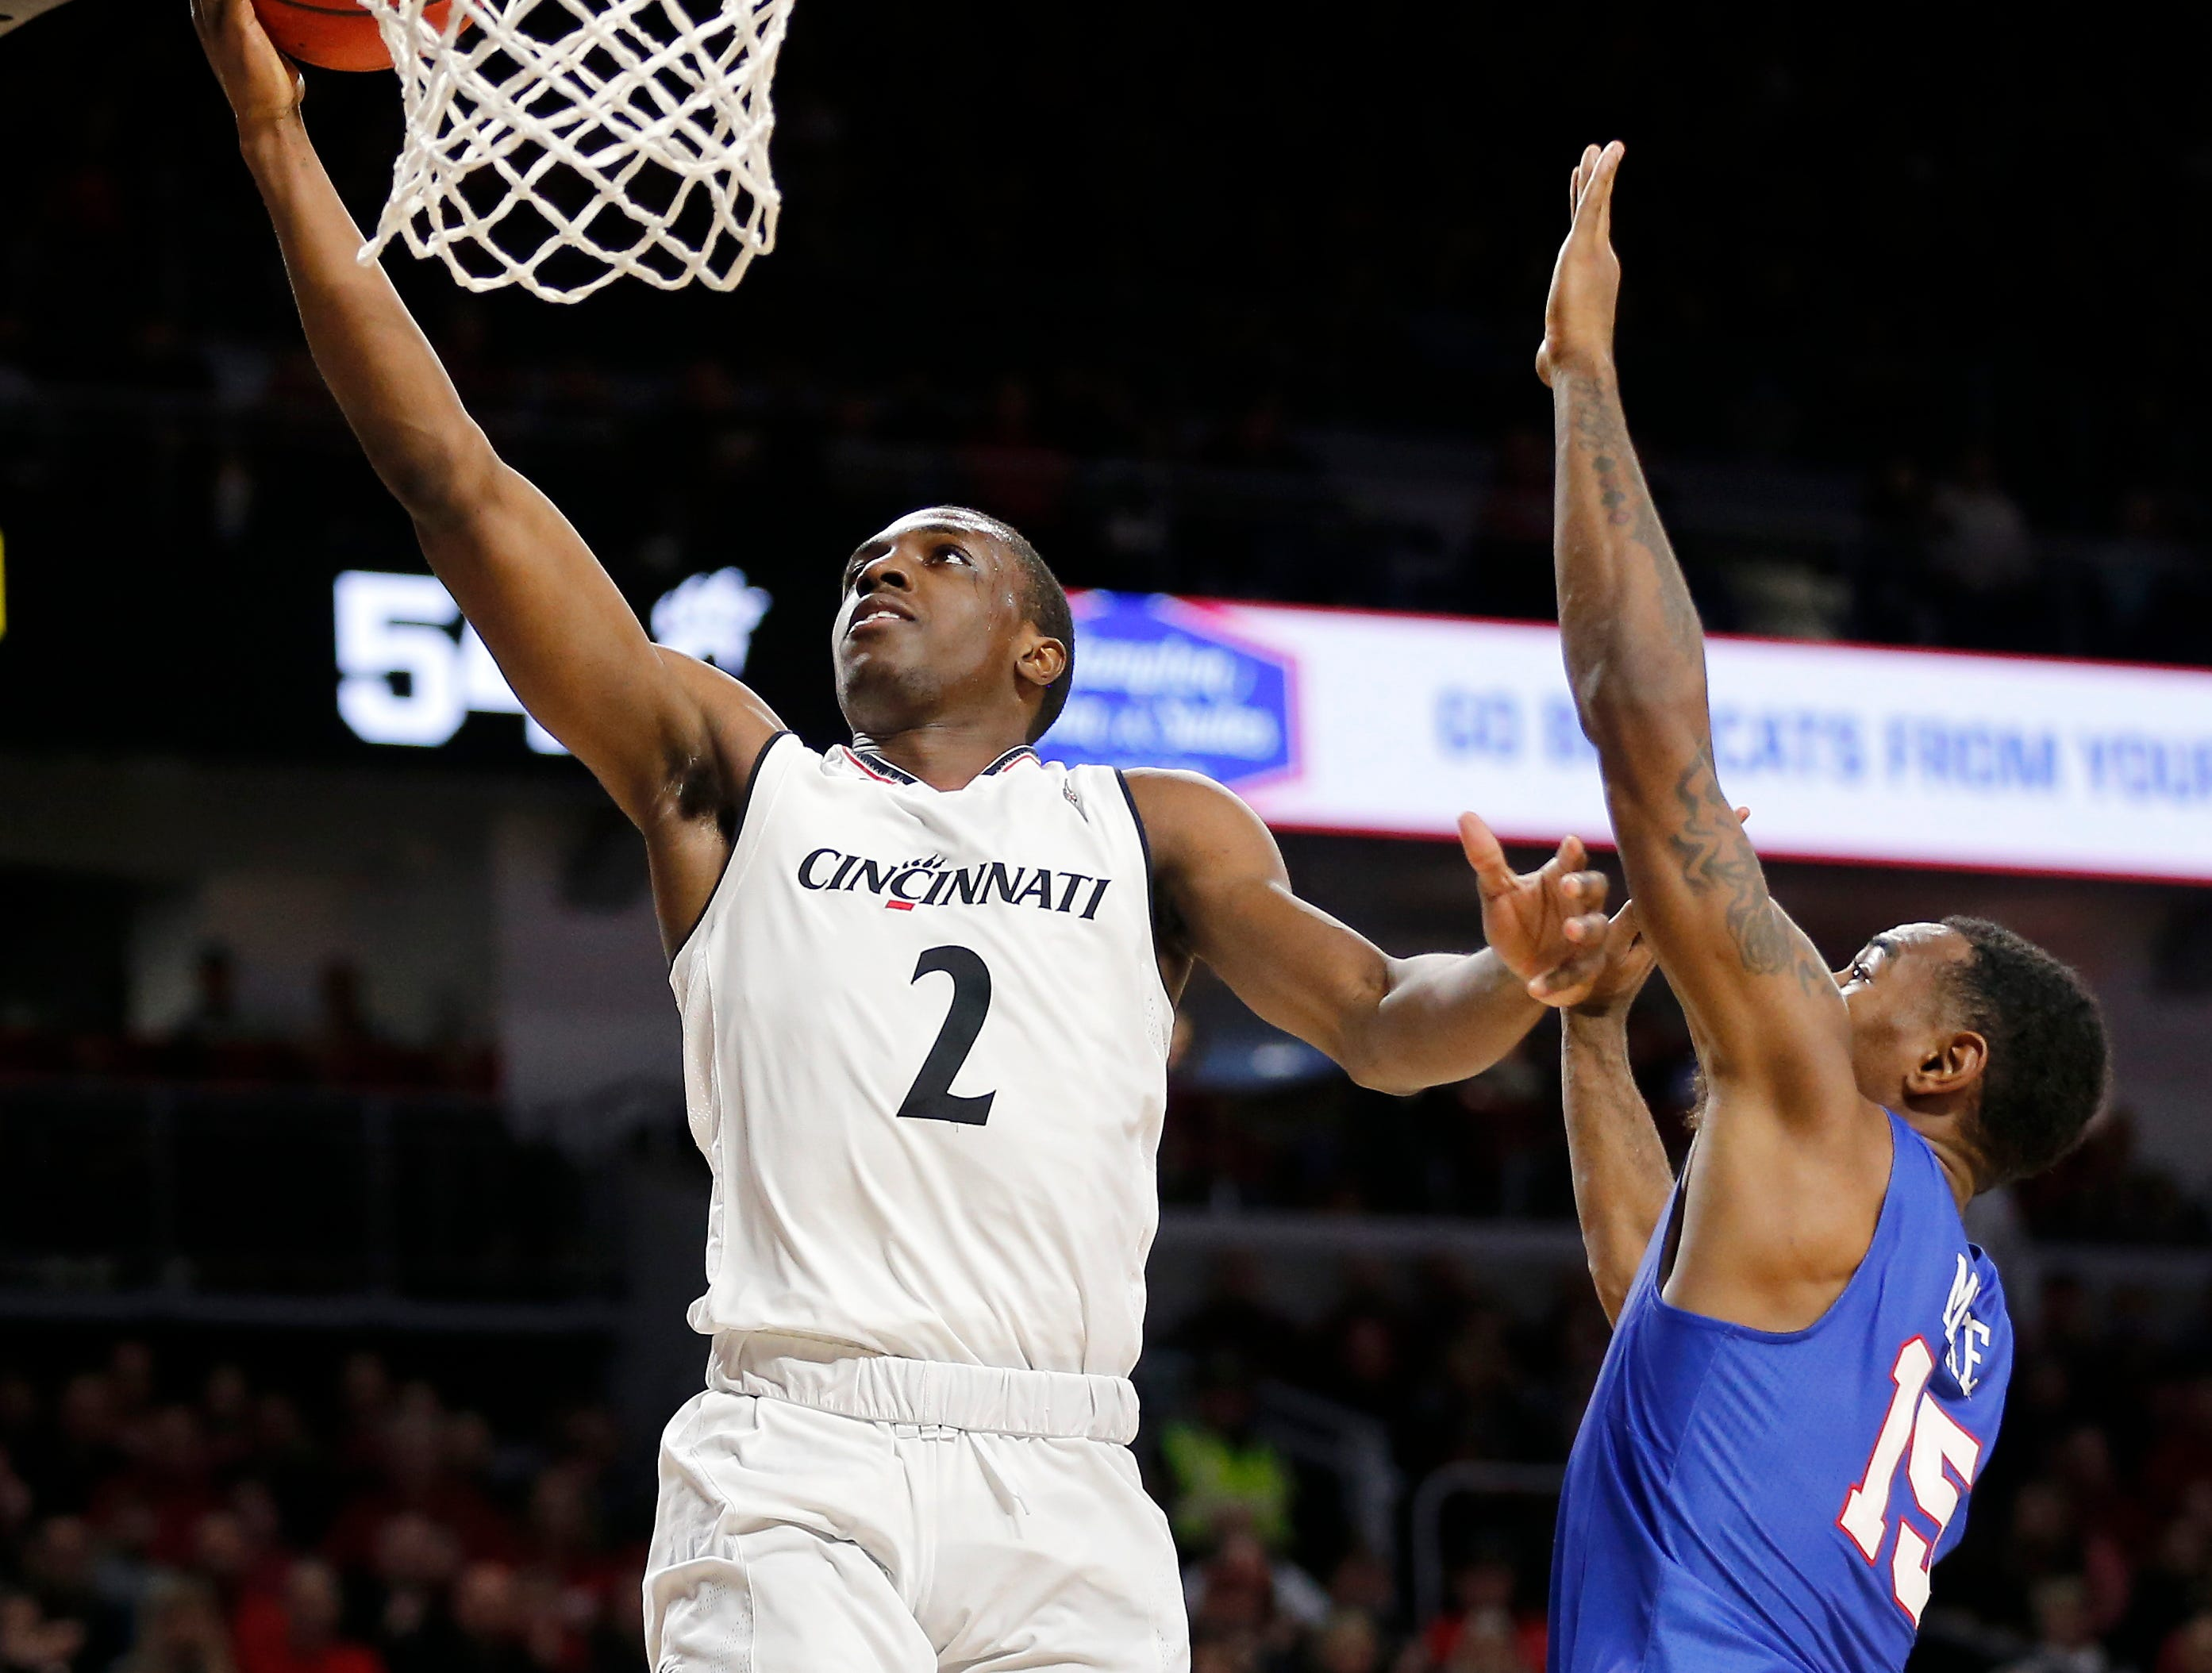 Cincinnati Bearcats guard Keith Williams (2) puts in a layup over Southern Methodist Mustangs forward Isiaha Mike (15) in the second half the the NCAA American Athletic Conference basketball game between the Cincinnati Bearcats and the Southern Methodist Mustangs at Fifth Third Arena in Cincinnati on Saturday, Feb. 2, 2019. The Bearcats edged out SMU for a 73-68 win.